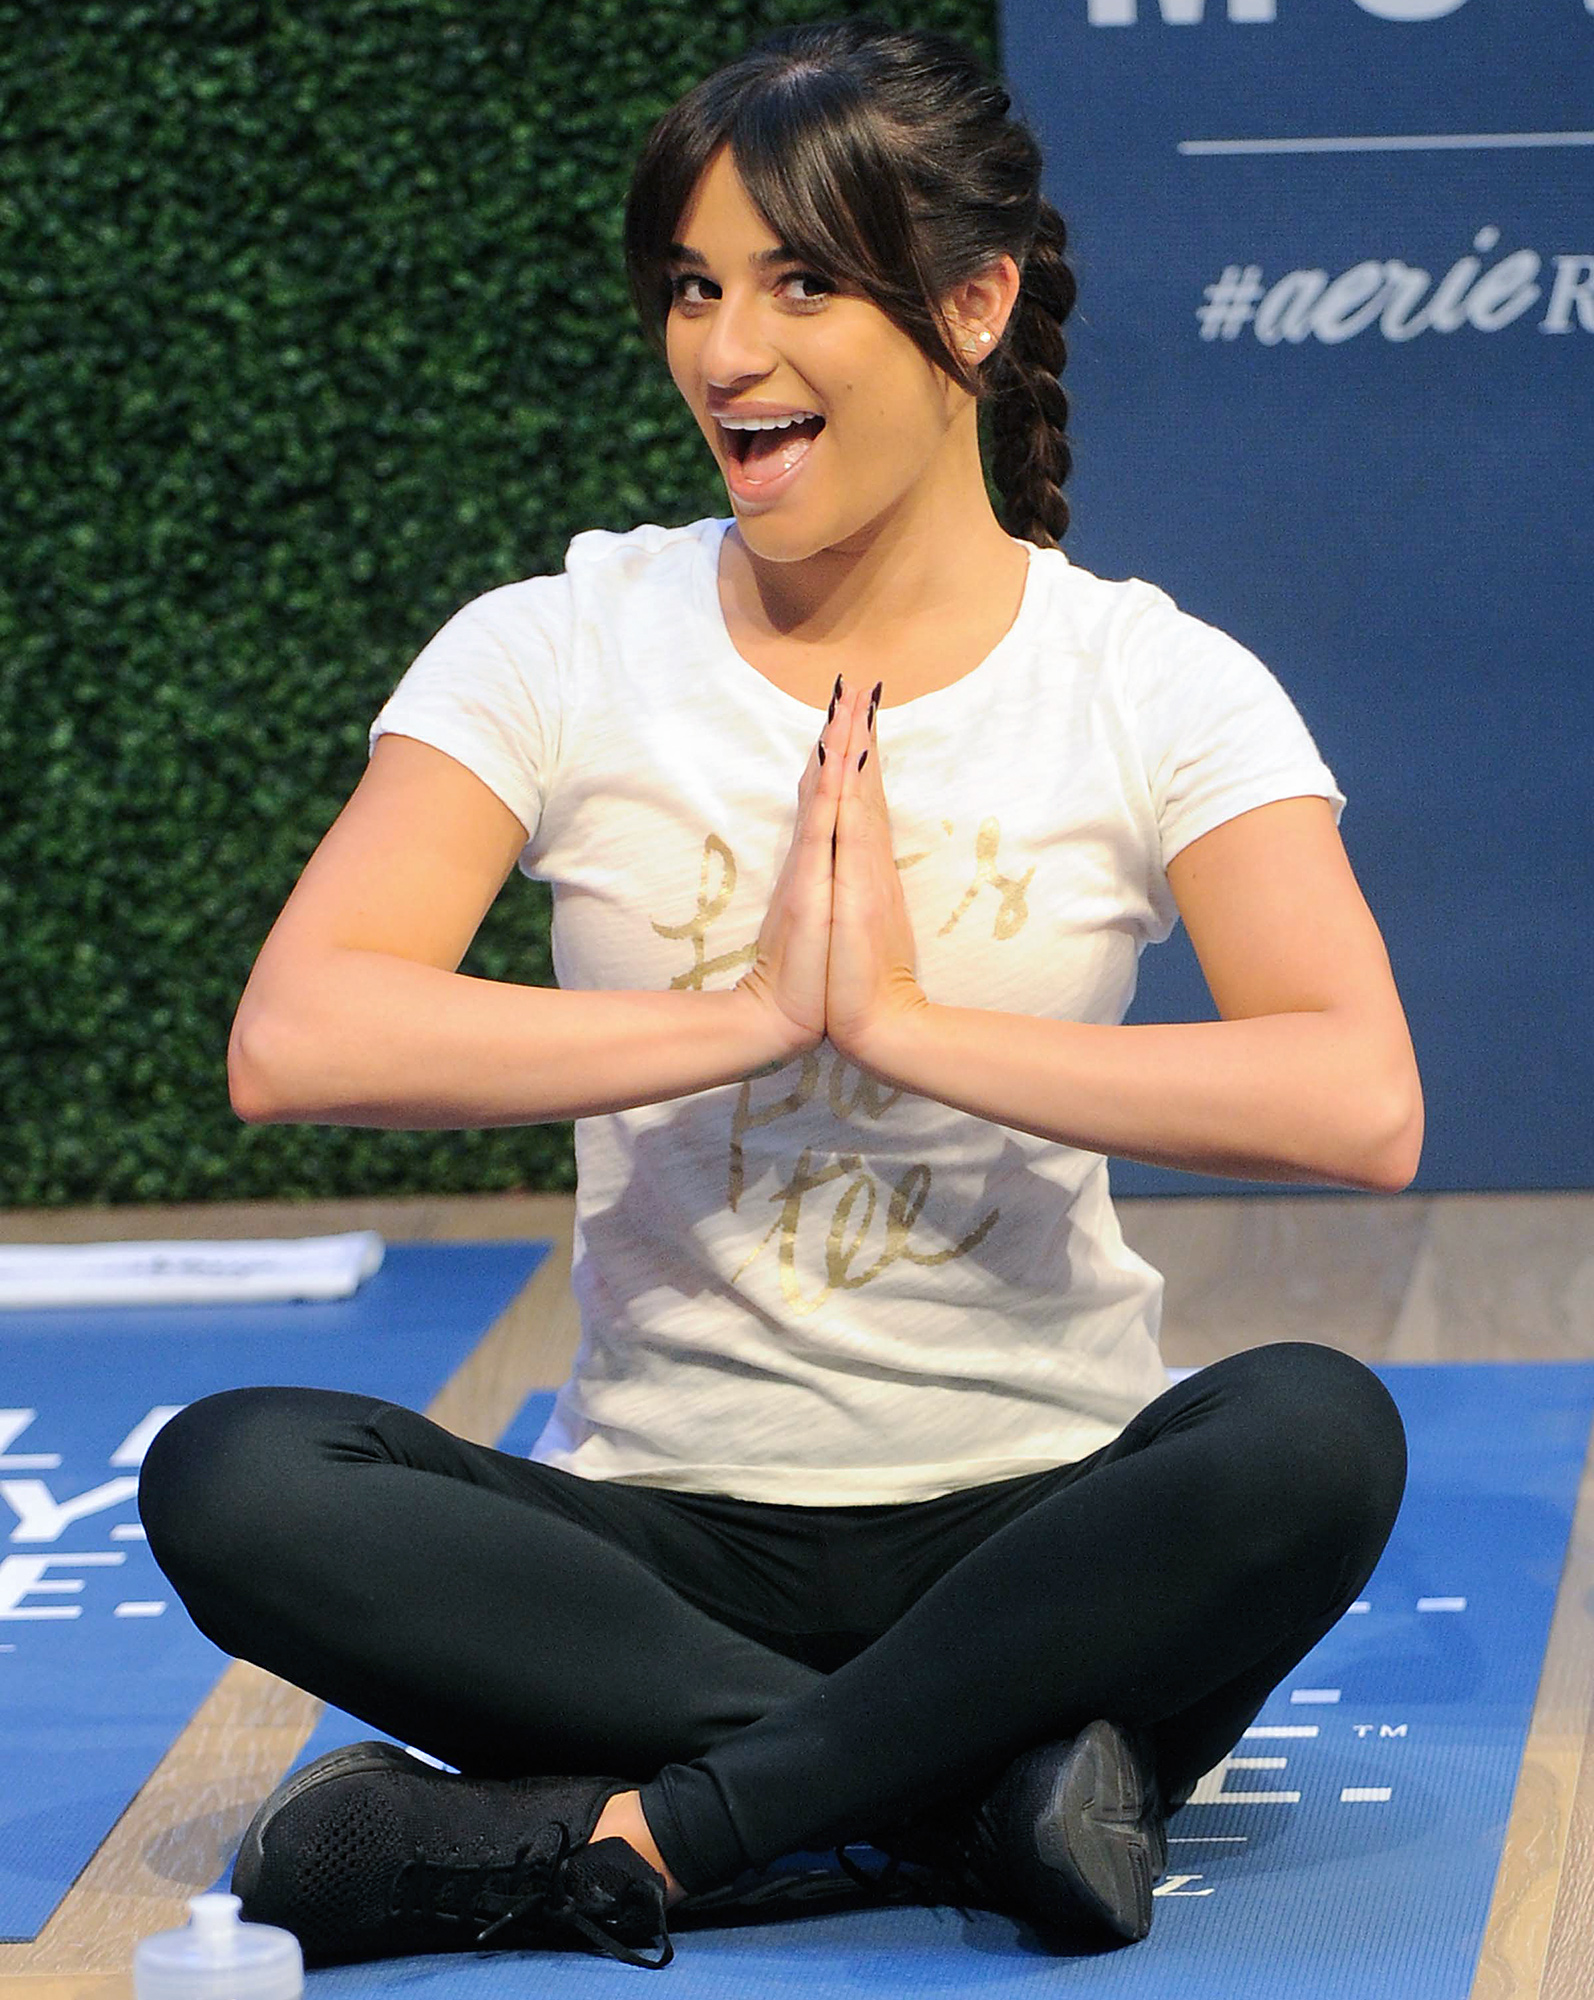 Lea Michelle Works Out and Meditates at a LIFTED class at the Aerie Pop-Up in Soho